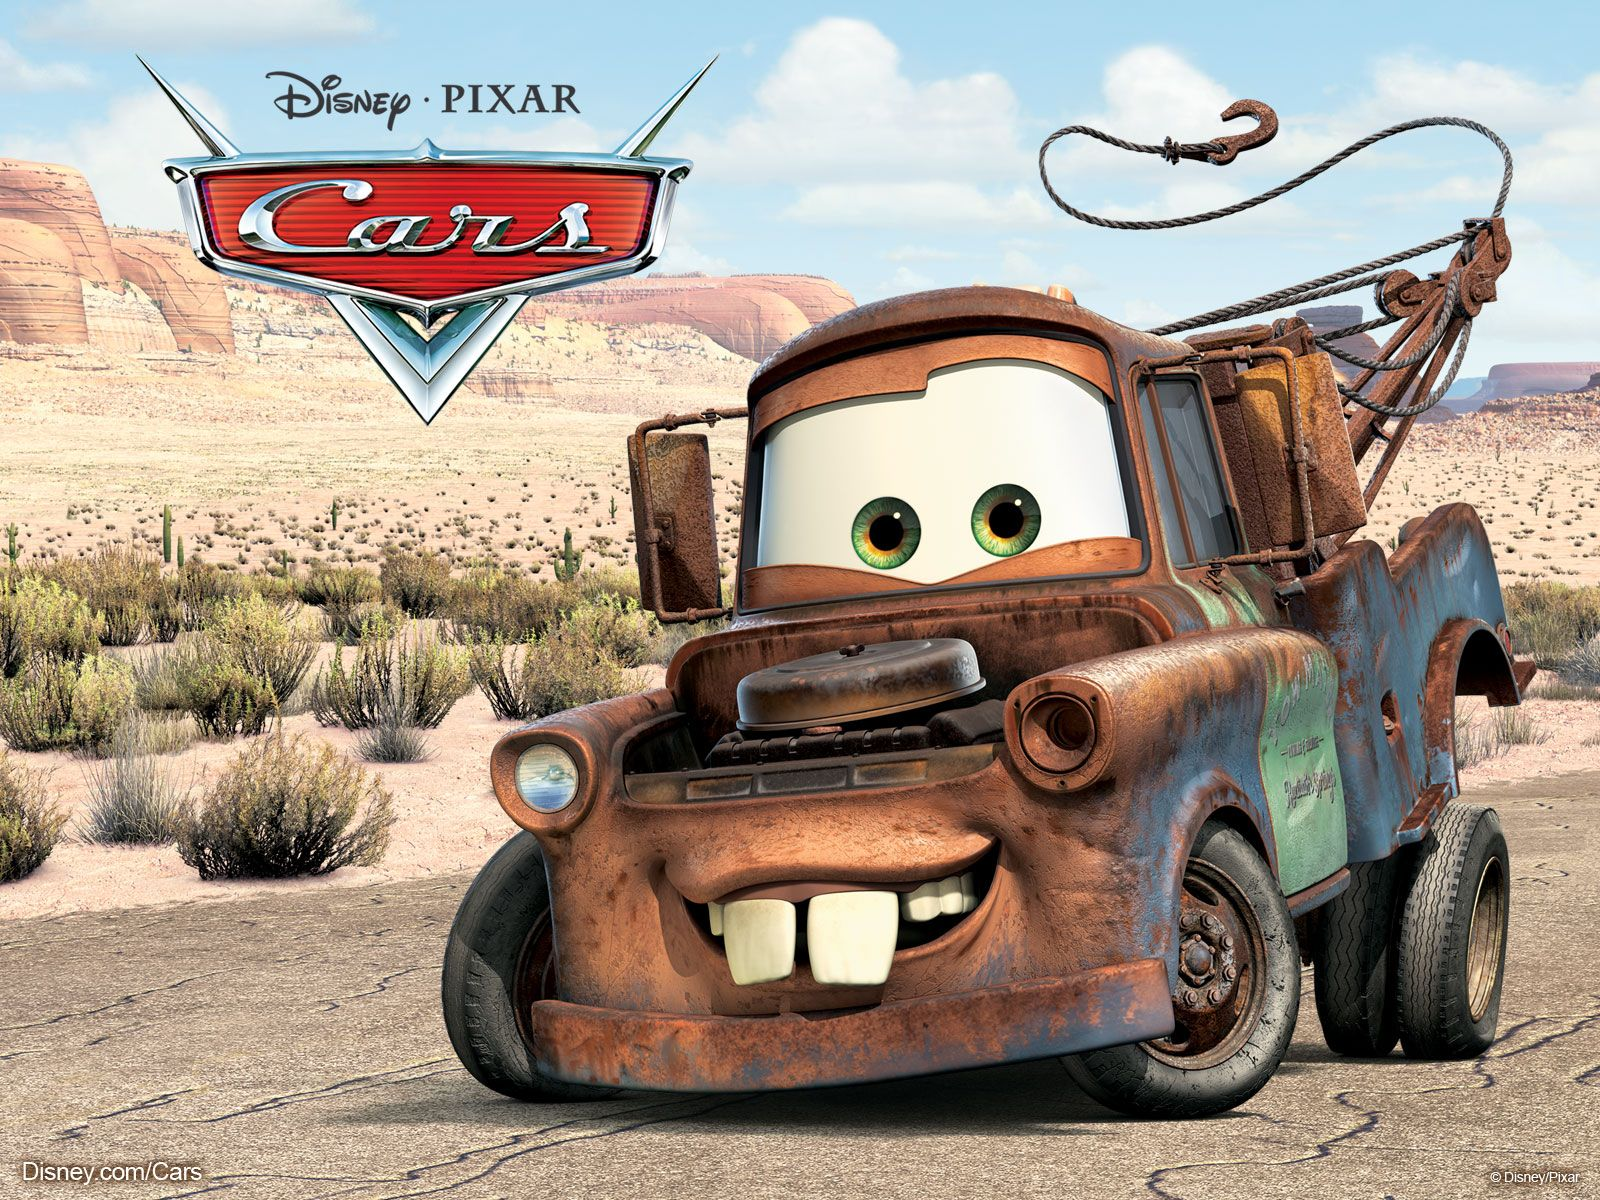 cars+movie Mater the Tow Truck from Pixar's Cars Movie